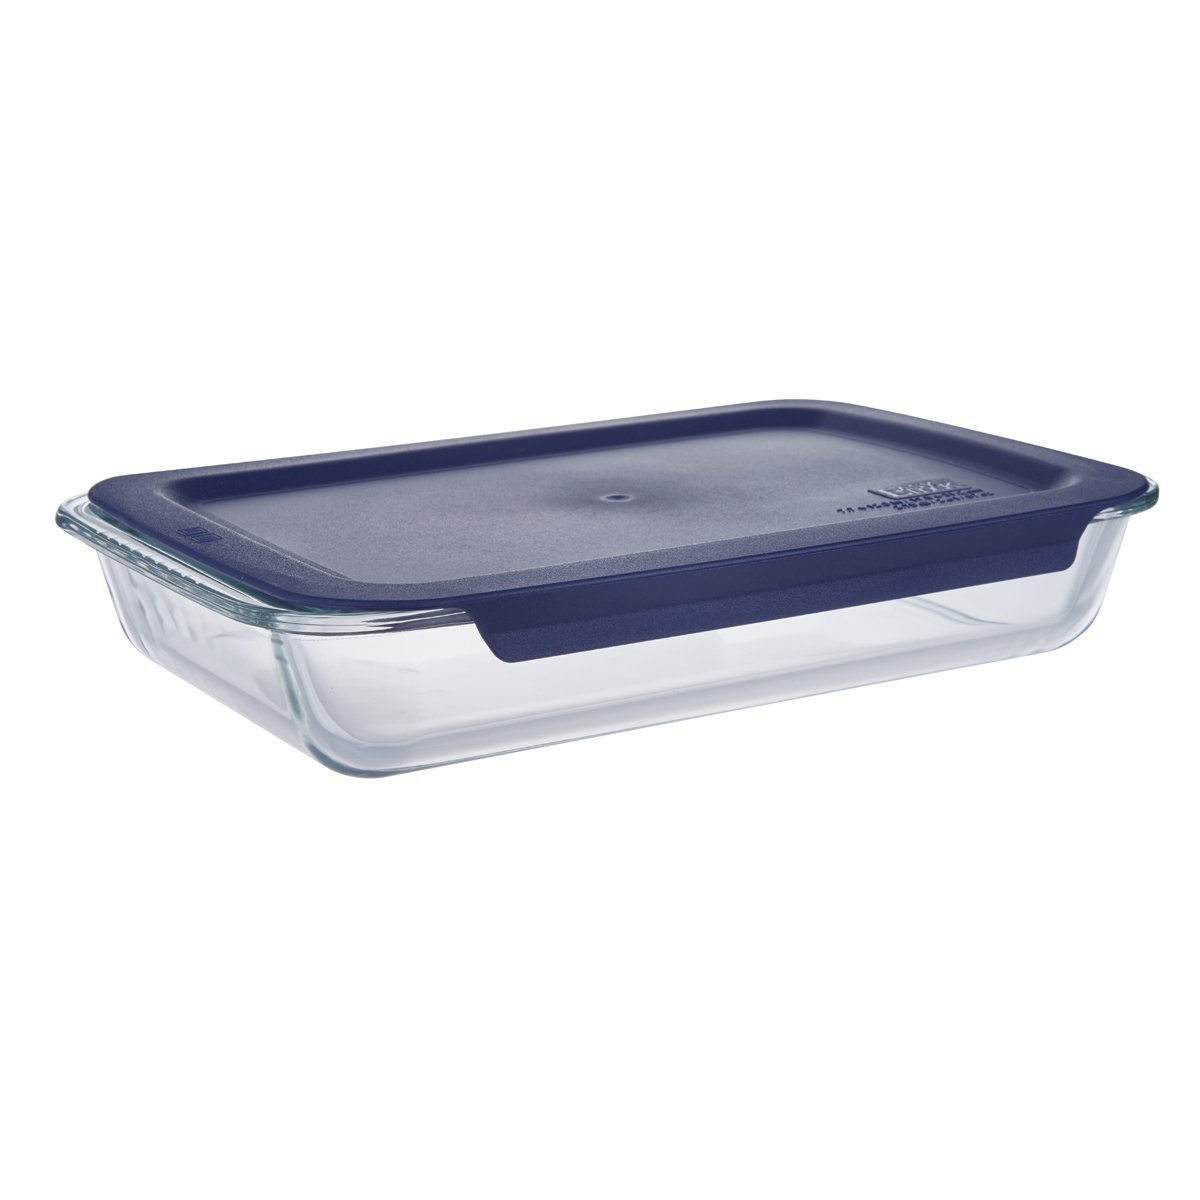 LEXINGWARE 1.8 Qt Square Glass Bakeware Dishes, Baking Tray with Blue Lids - 10.3 x 9.4 inch